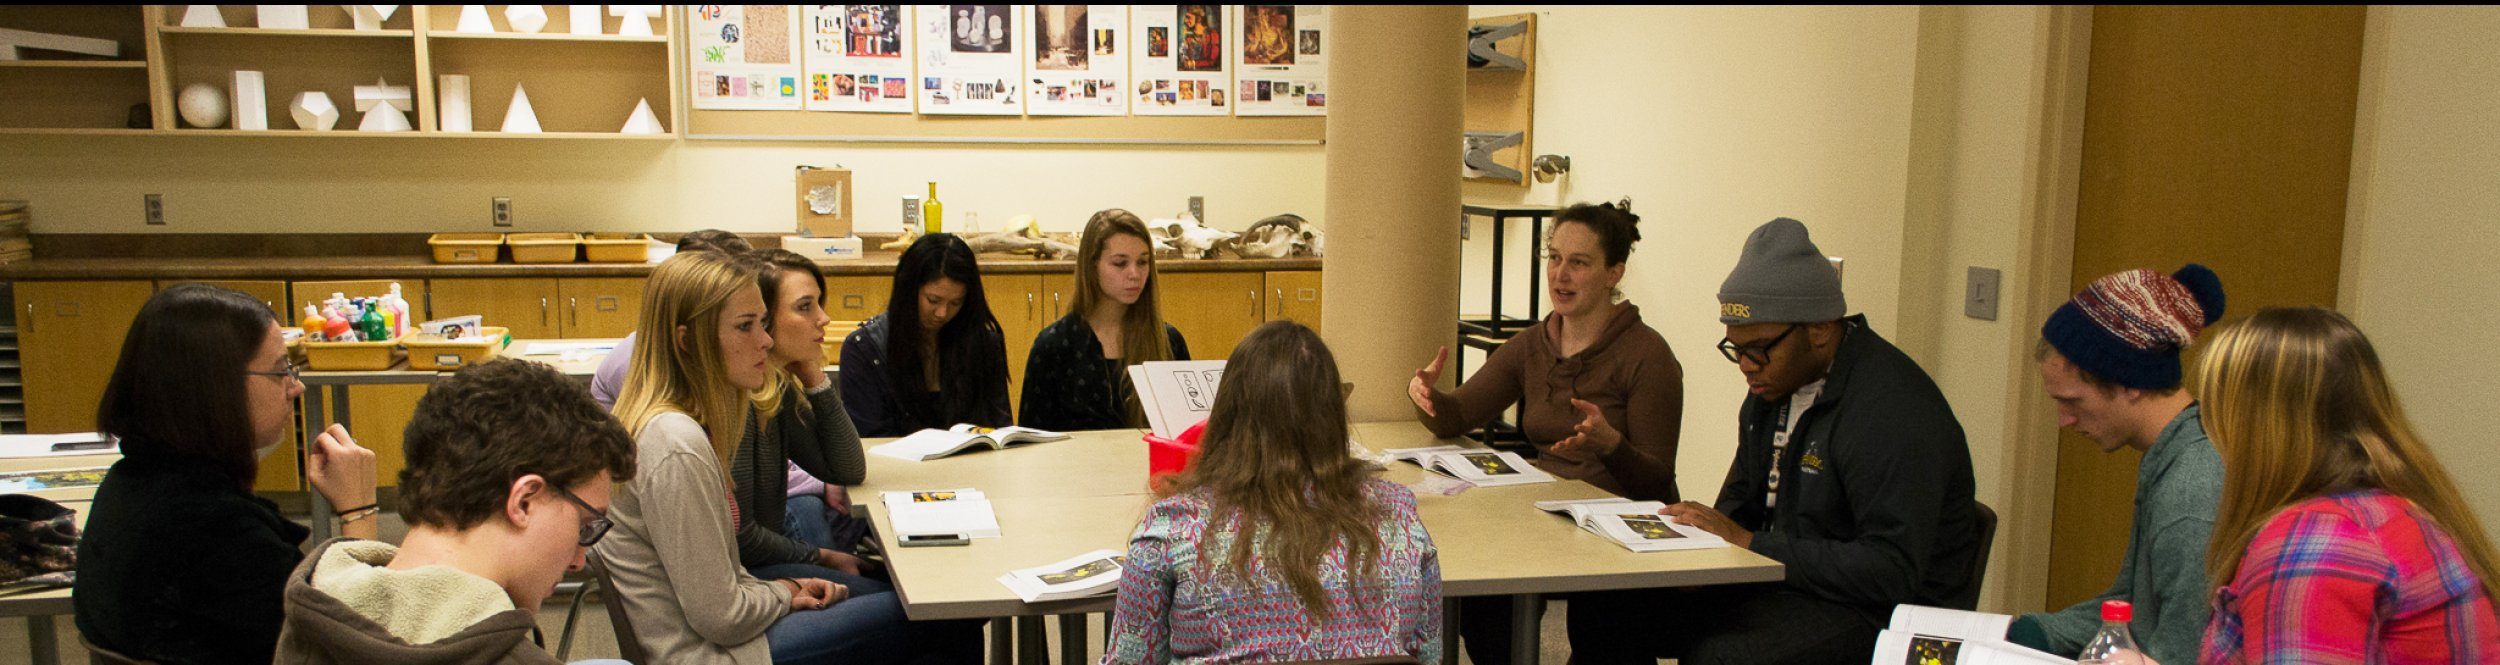 Art students work together at a table at Dordt.